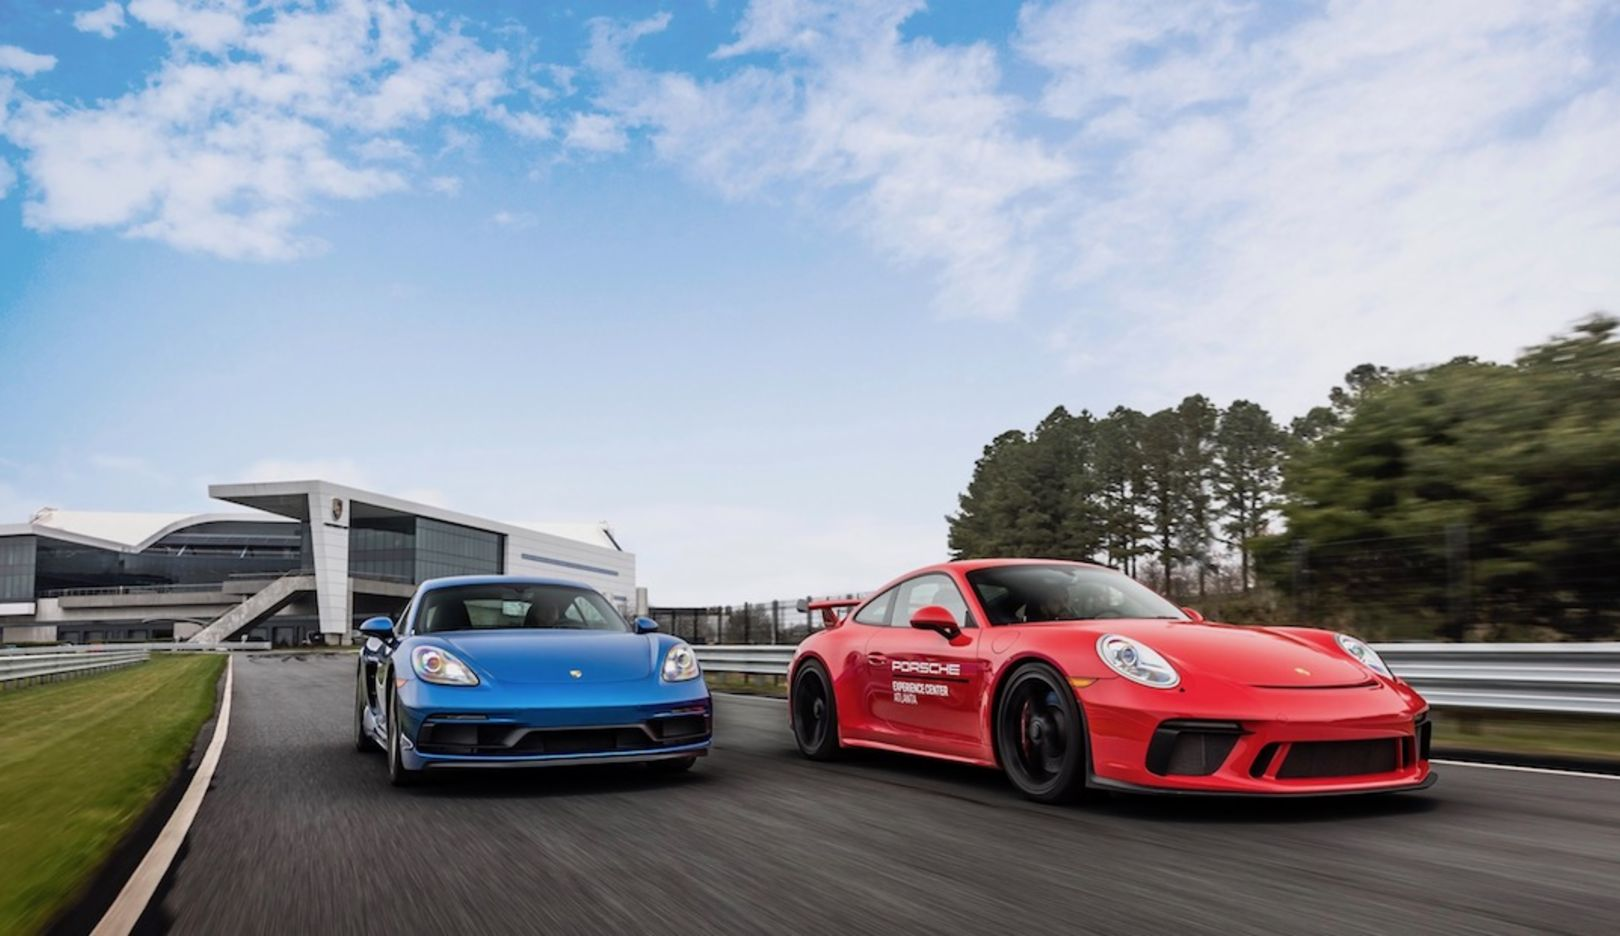 Porsche Experience Center >> Porsche Experience Centers Prove Immersive Retail Works For Sports